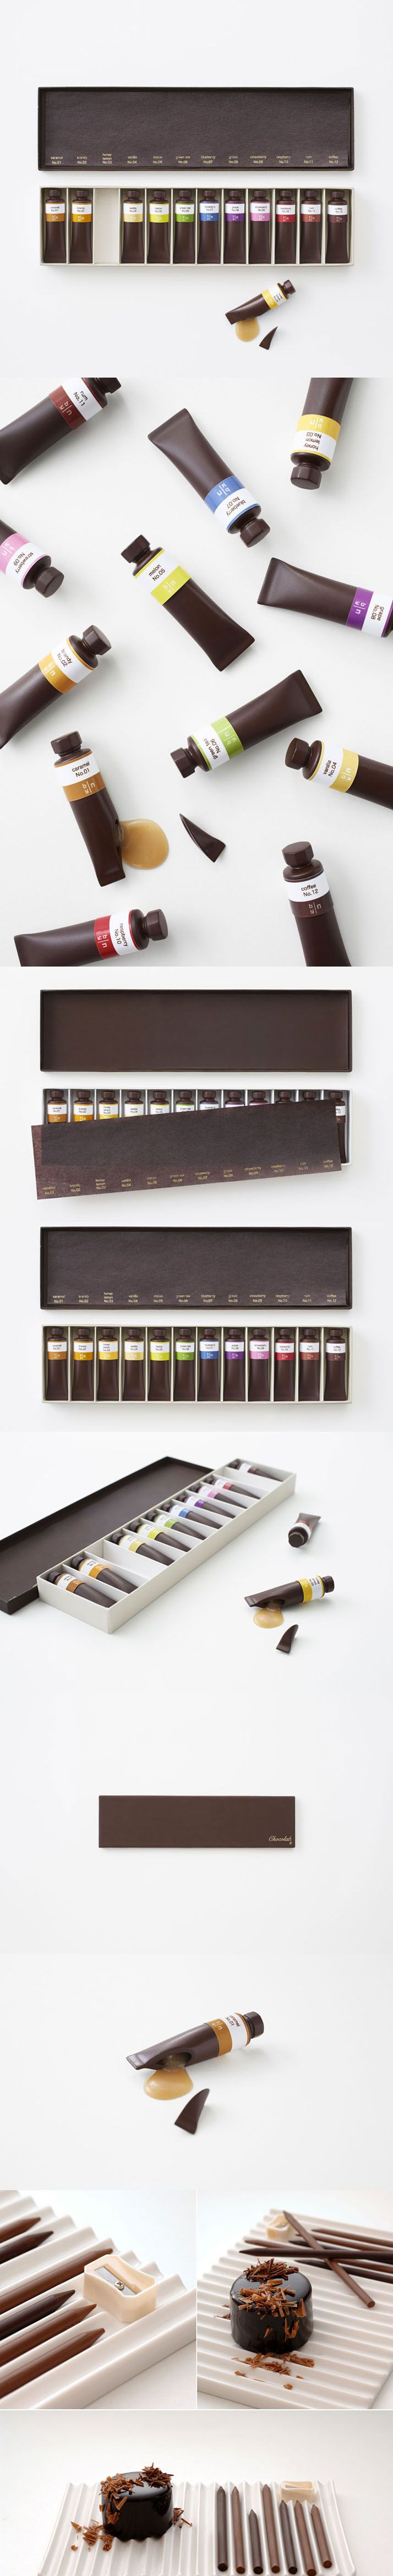 Edible Chocolate Paint Tubes by Nendo